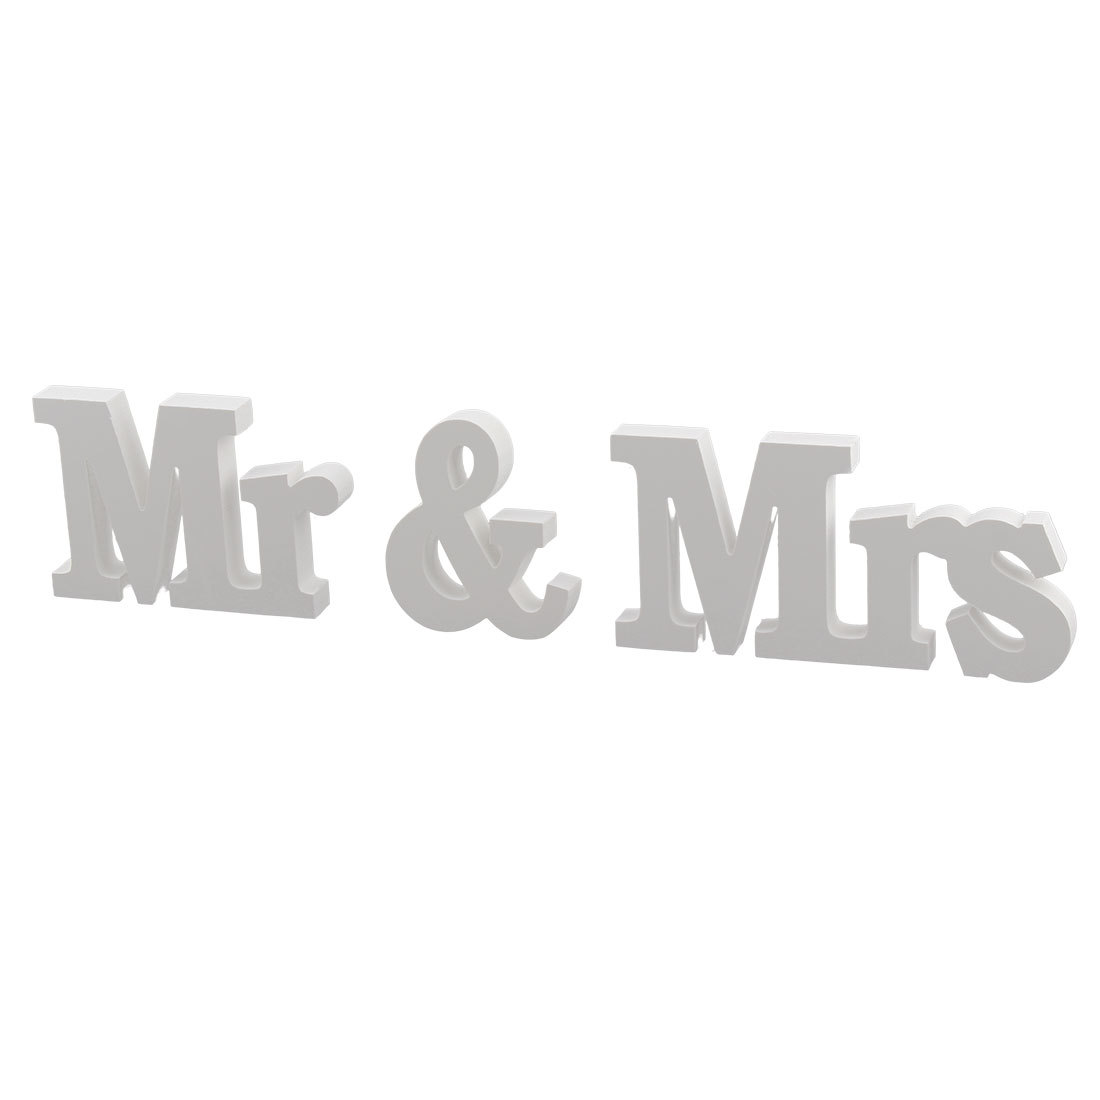 Wedding Decoration Plywood Mr and Mrs Letters Word DIY Wall White 3 in 1